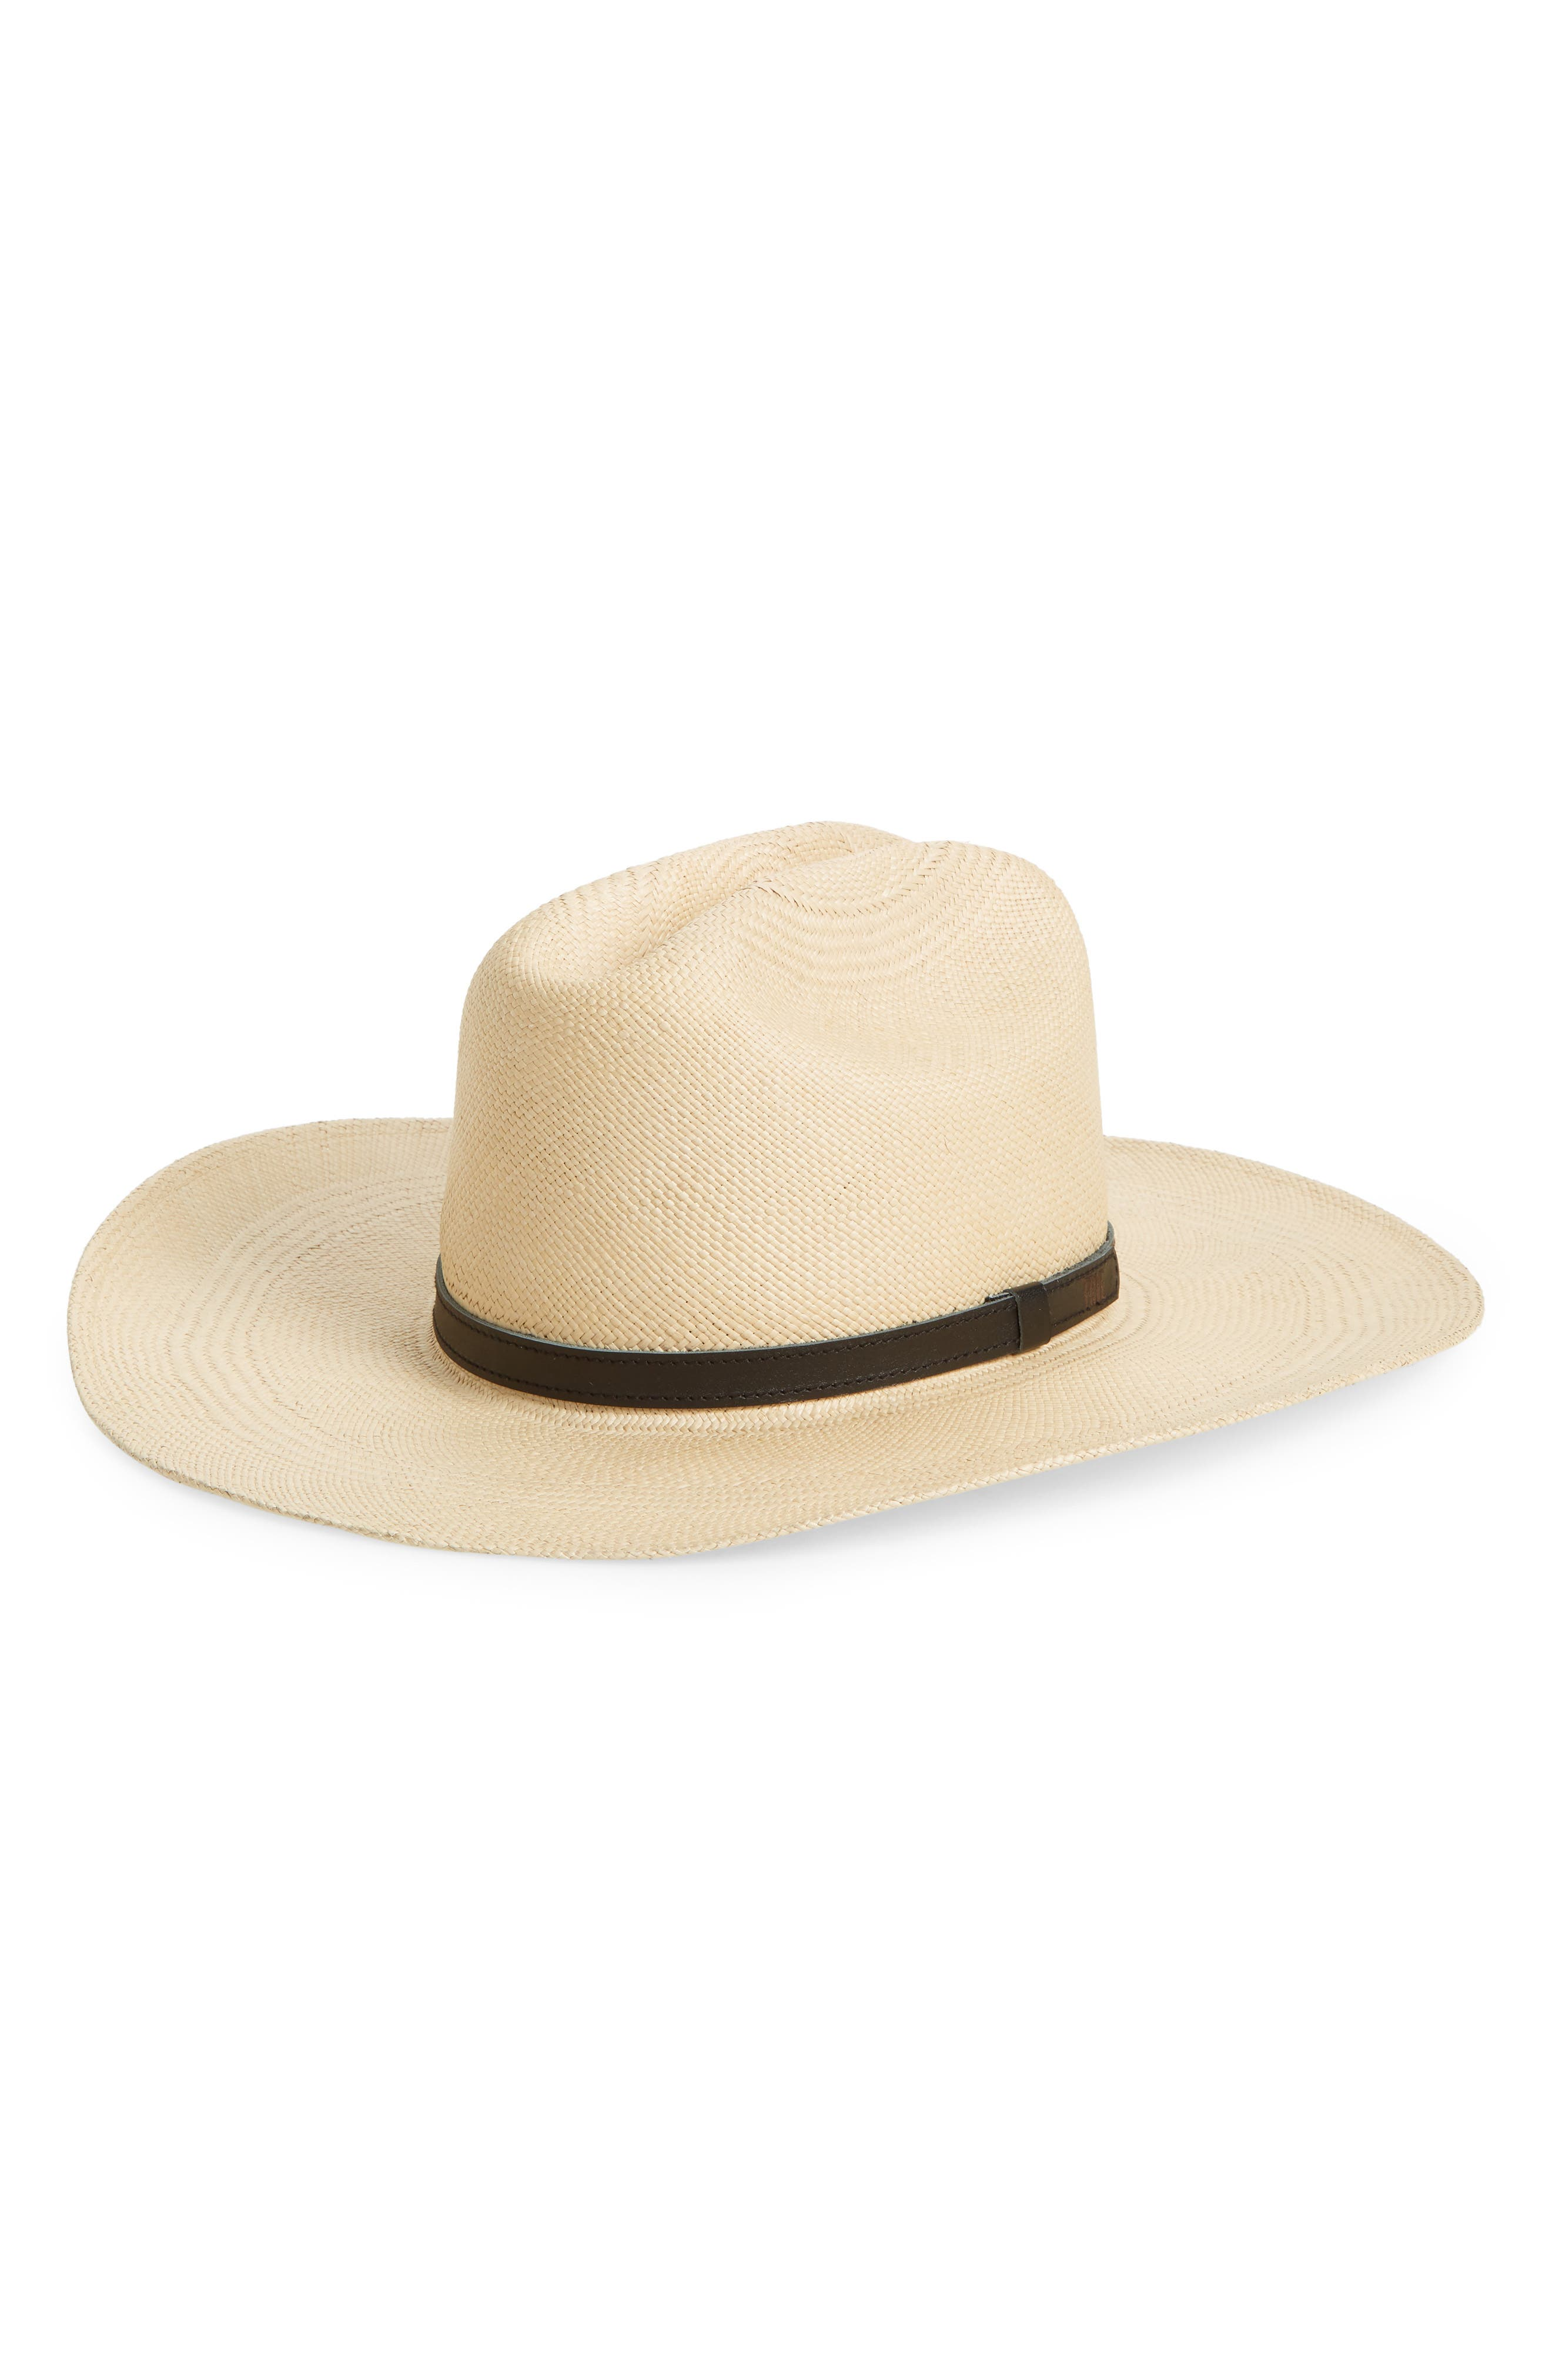 Woven Panama Straw Hat, Main, color, TANNED